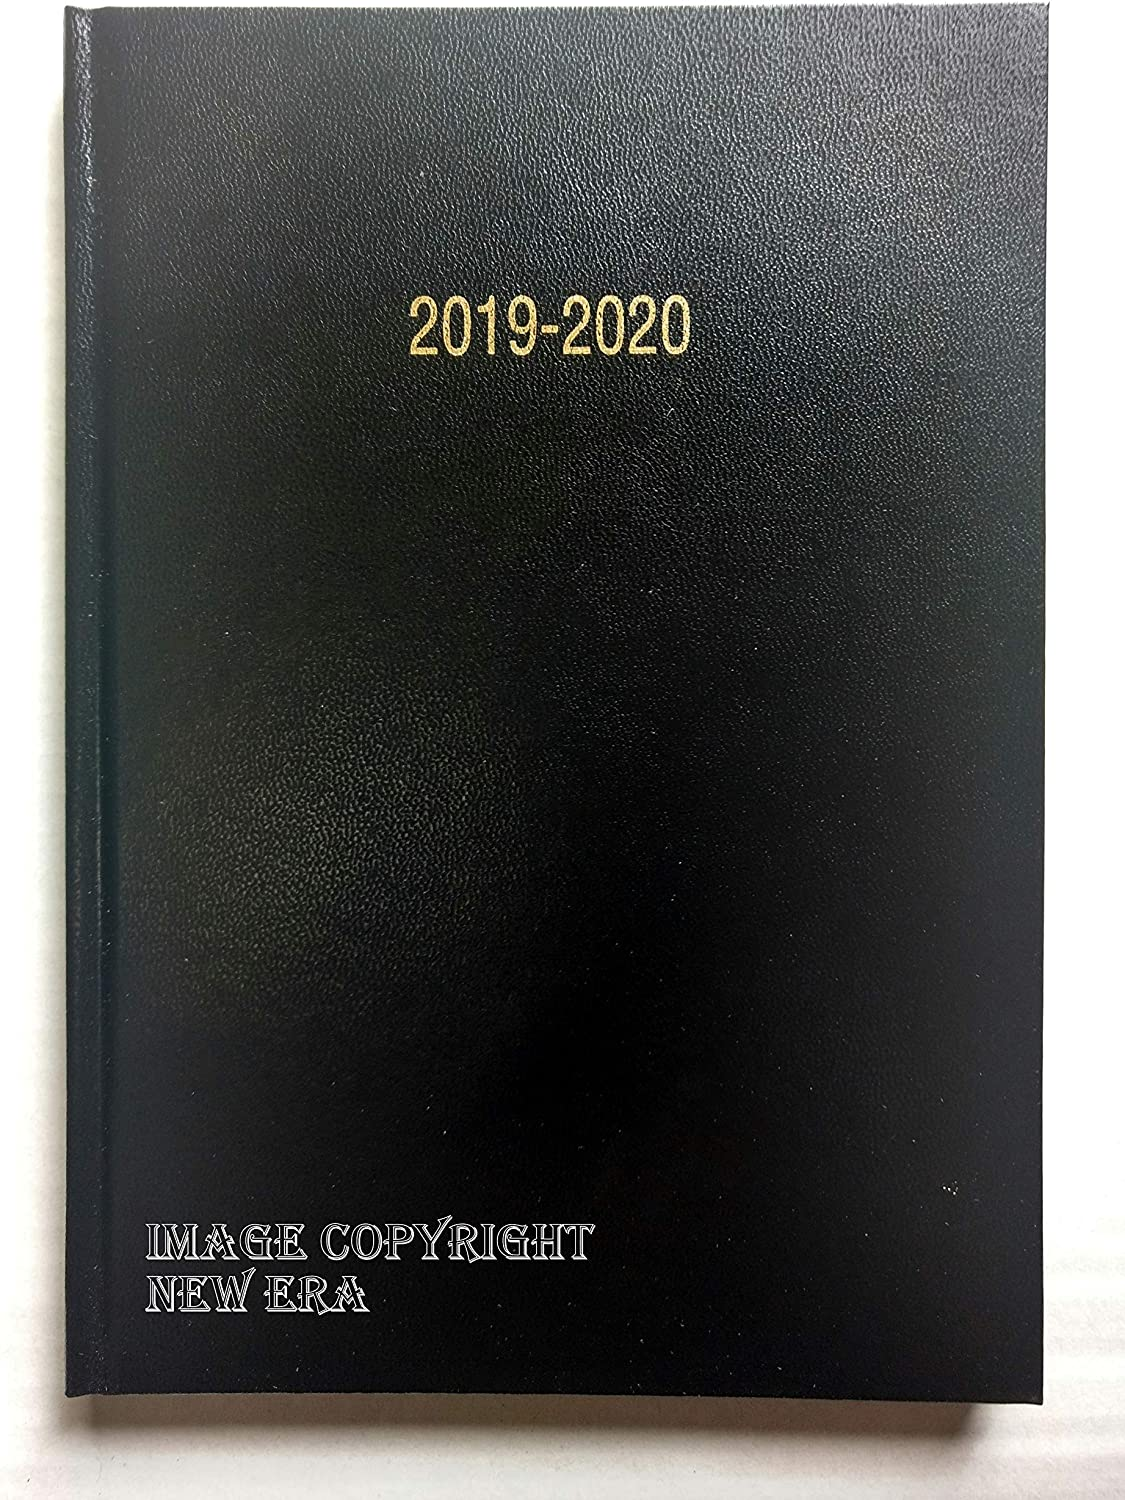 Diary Book 2019-2020 Academic Mid Year Diary A5 Size Week to View Appointment